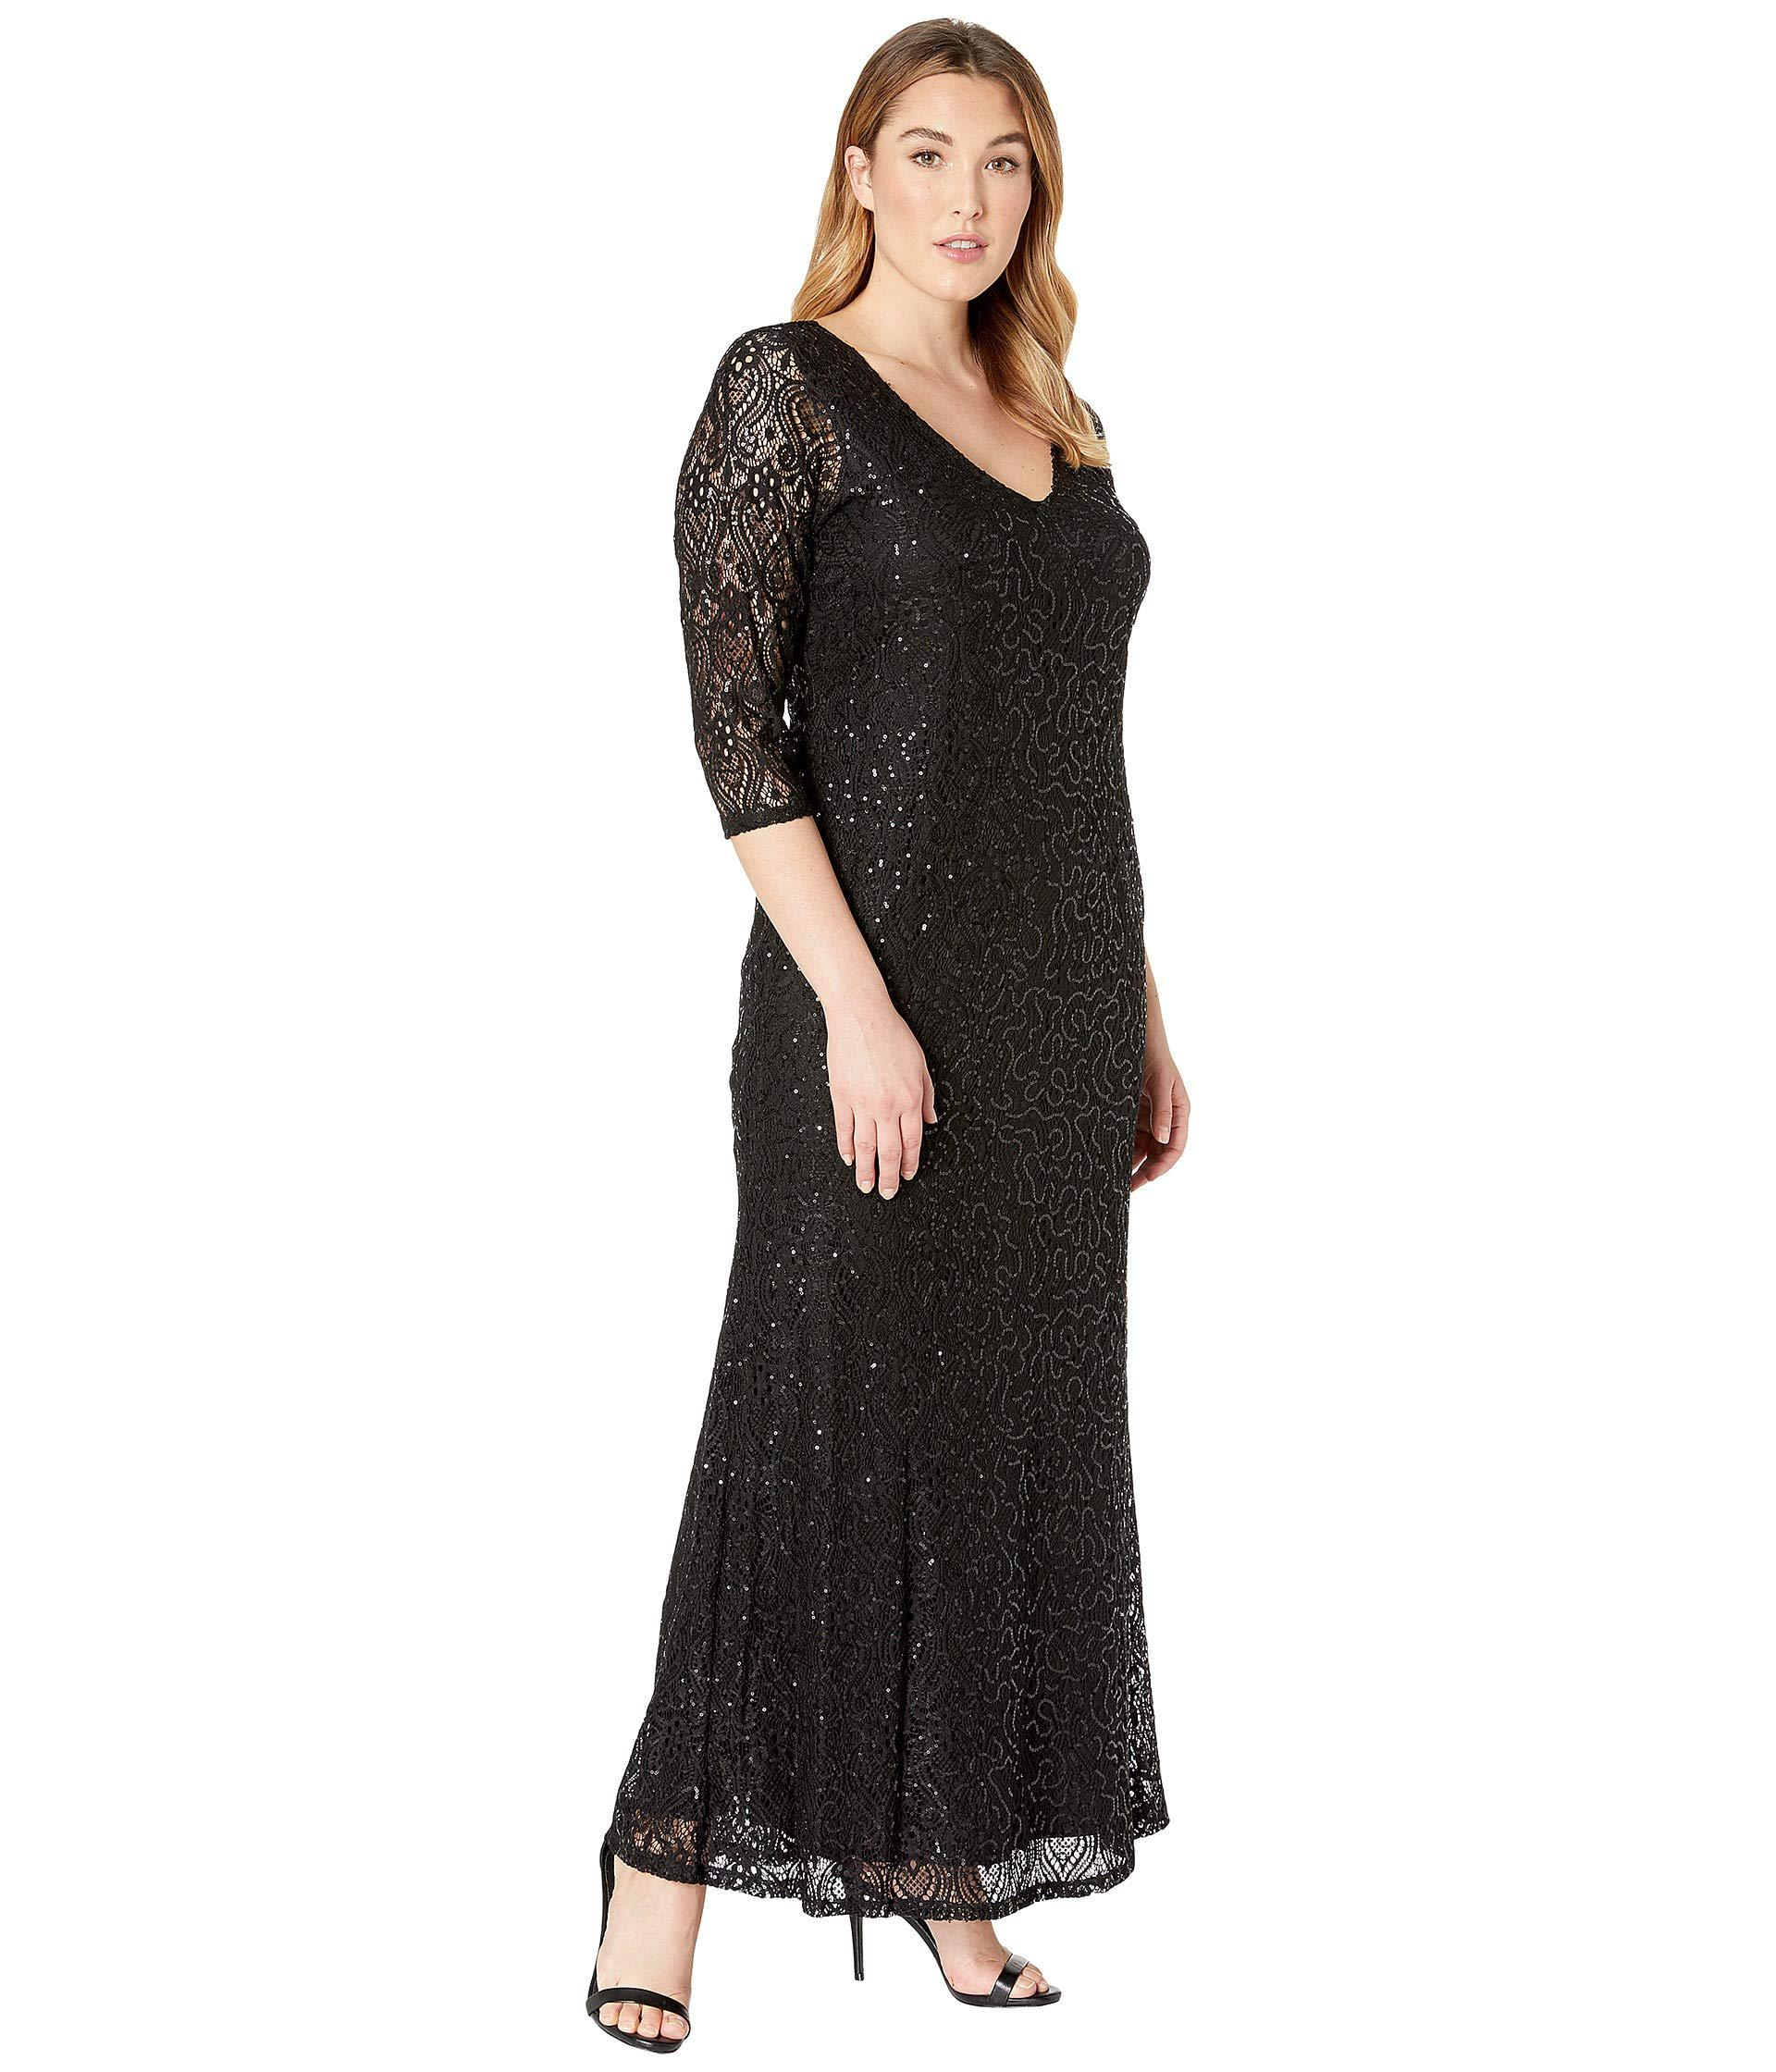 34008c5ef014c Marina Plus Size Stretch Sequin Lace 3/4 Sleeve Gown in Black - Lyst